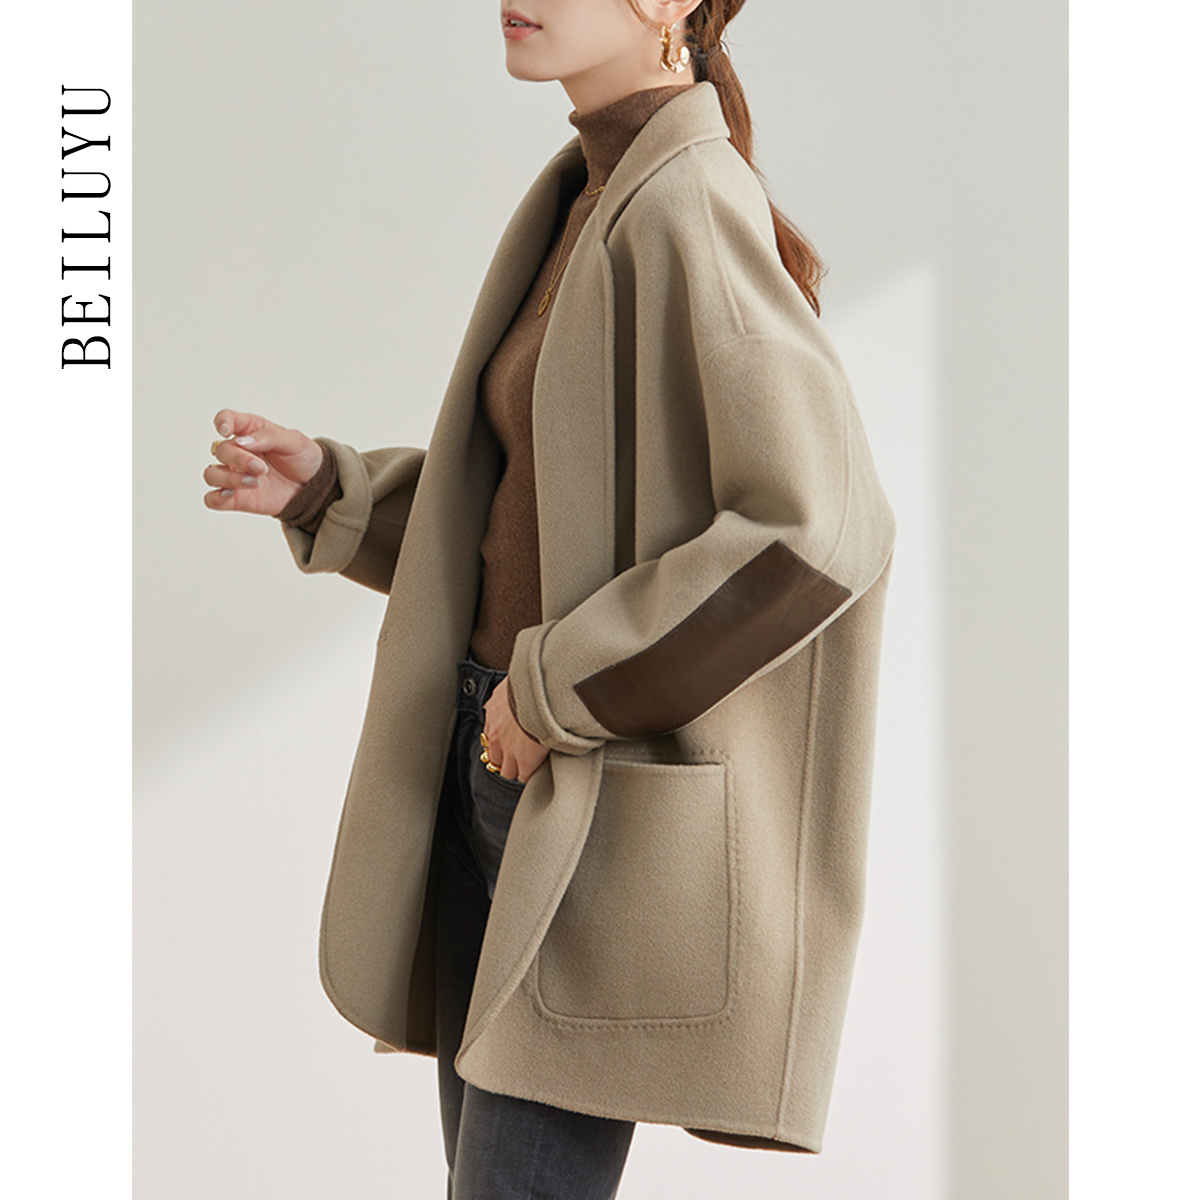 Small high-end fur coat 2020 autumn winter new Hepburn style short loose double-sided cashmere coat girl